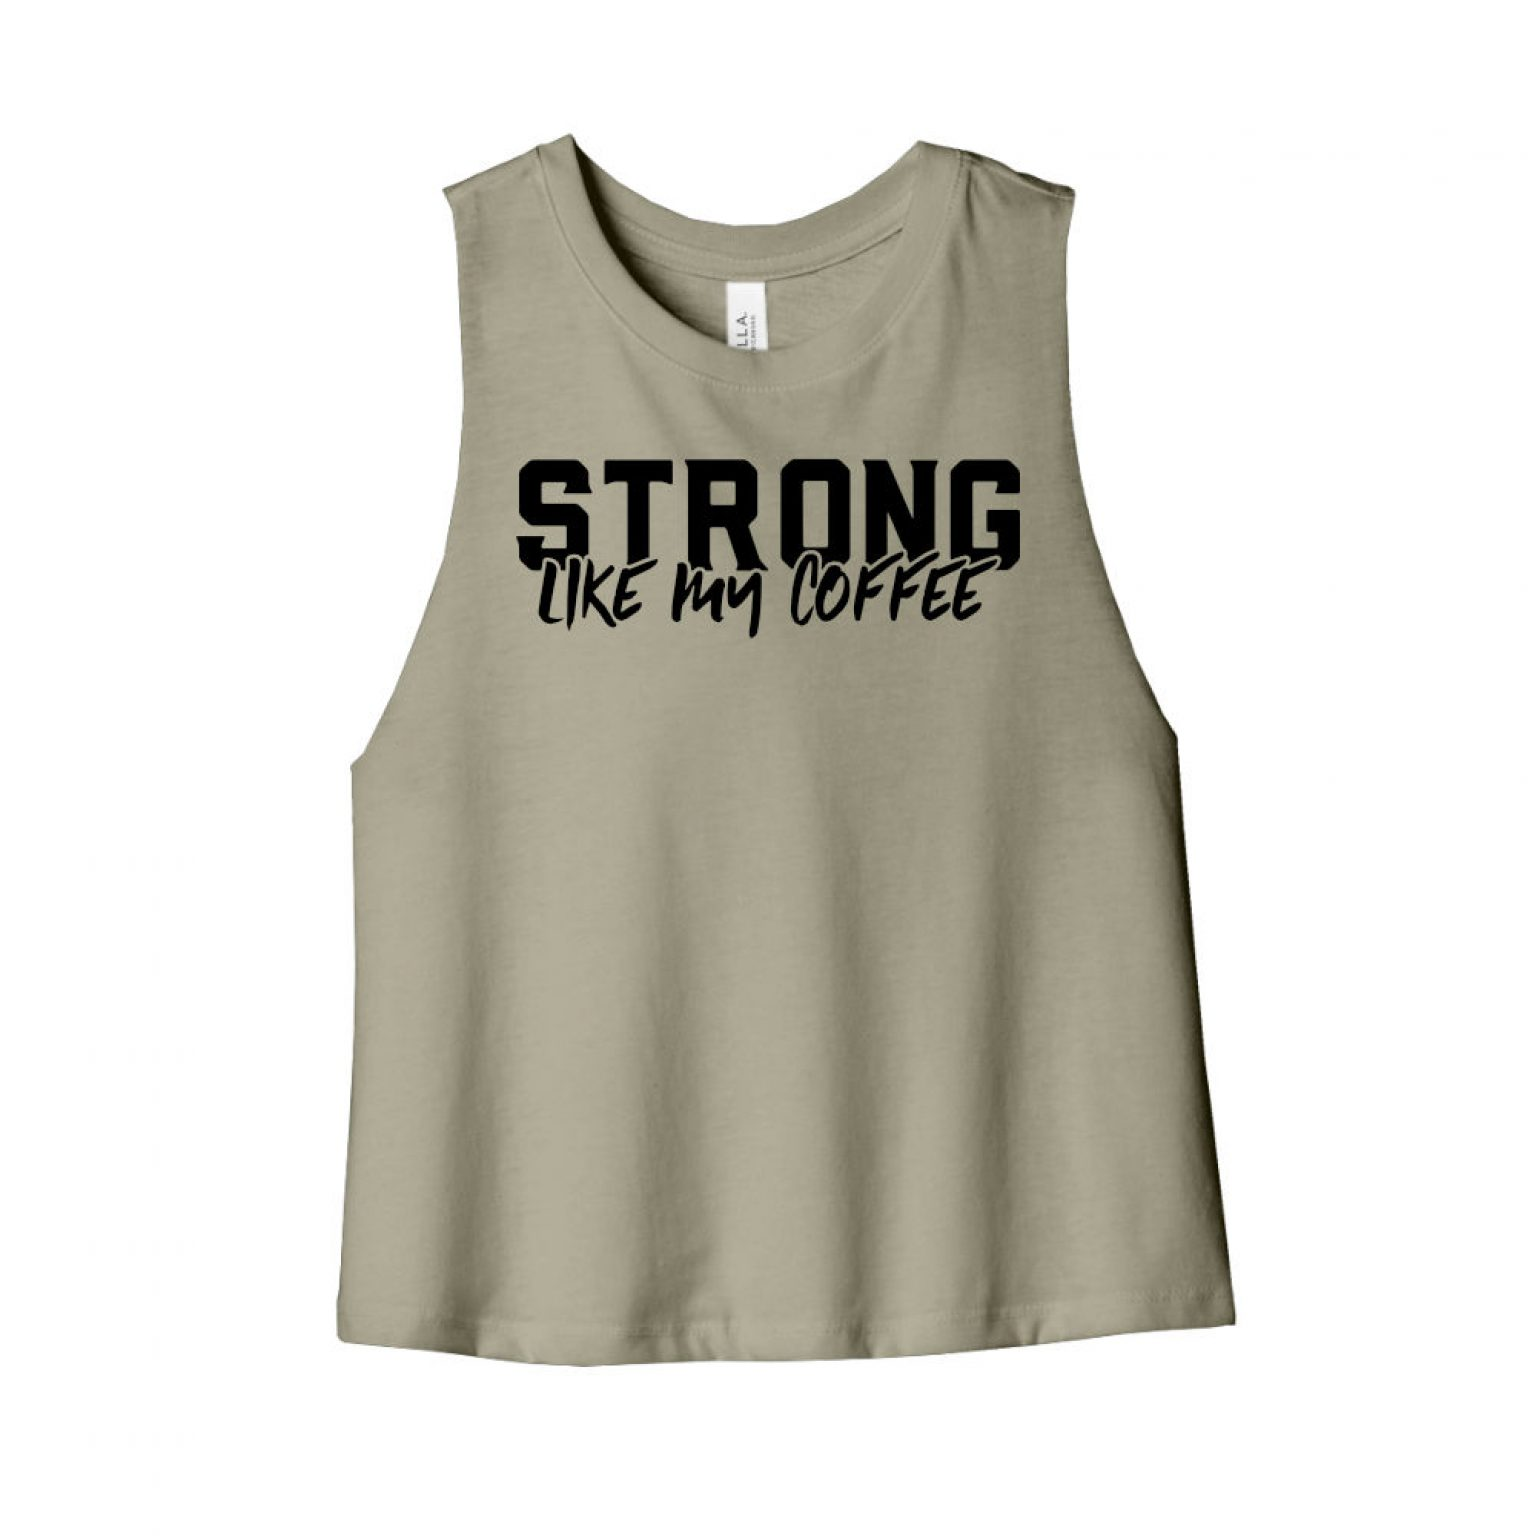 strongcoffe cropped military front